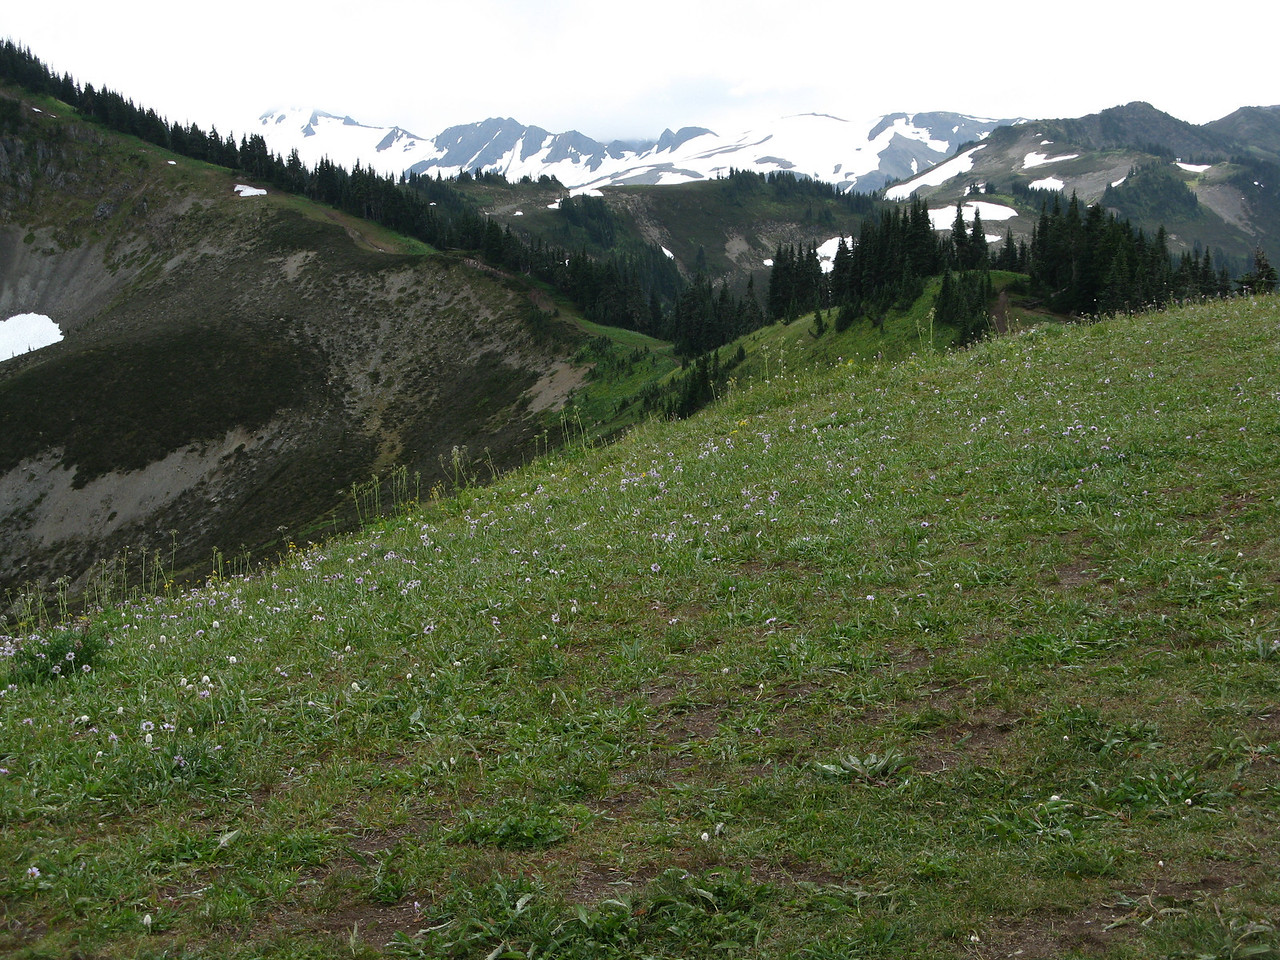 The ridge extends for a mile or more in opposite directions from the wye with the path from the trailhead.